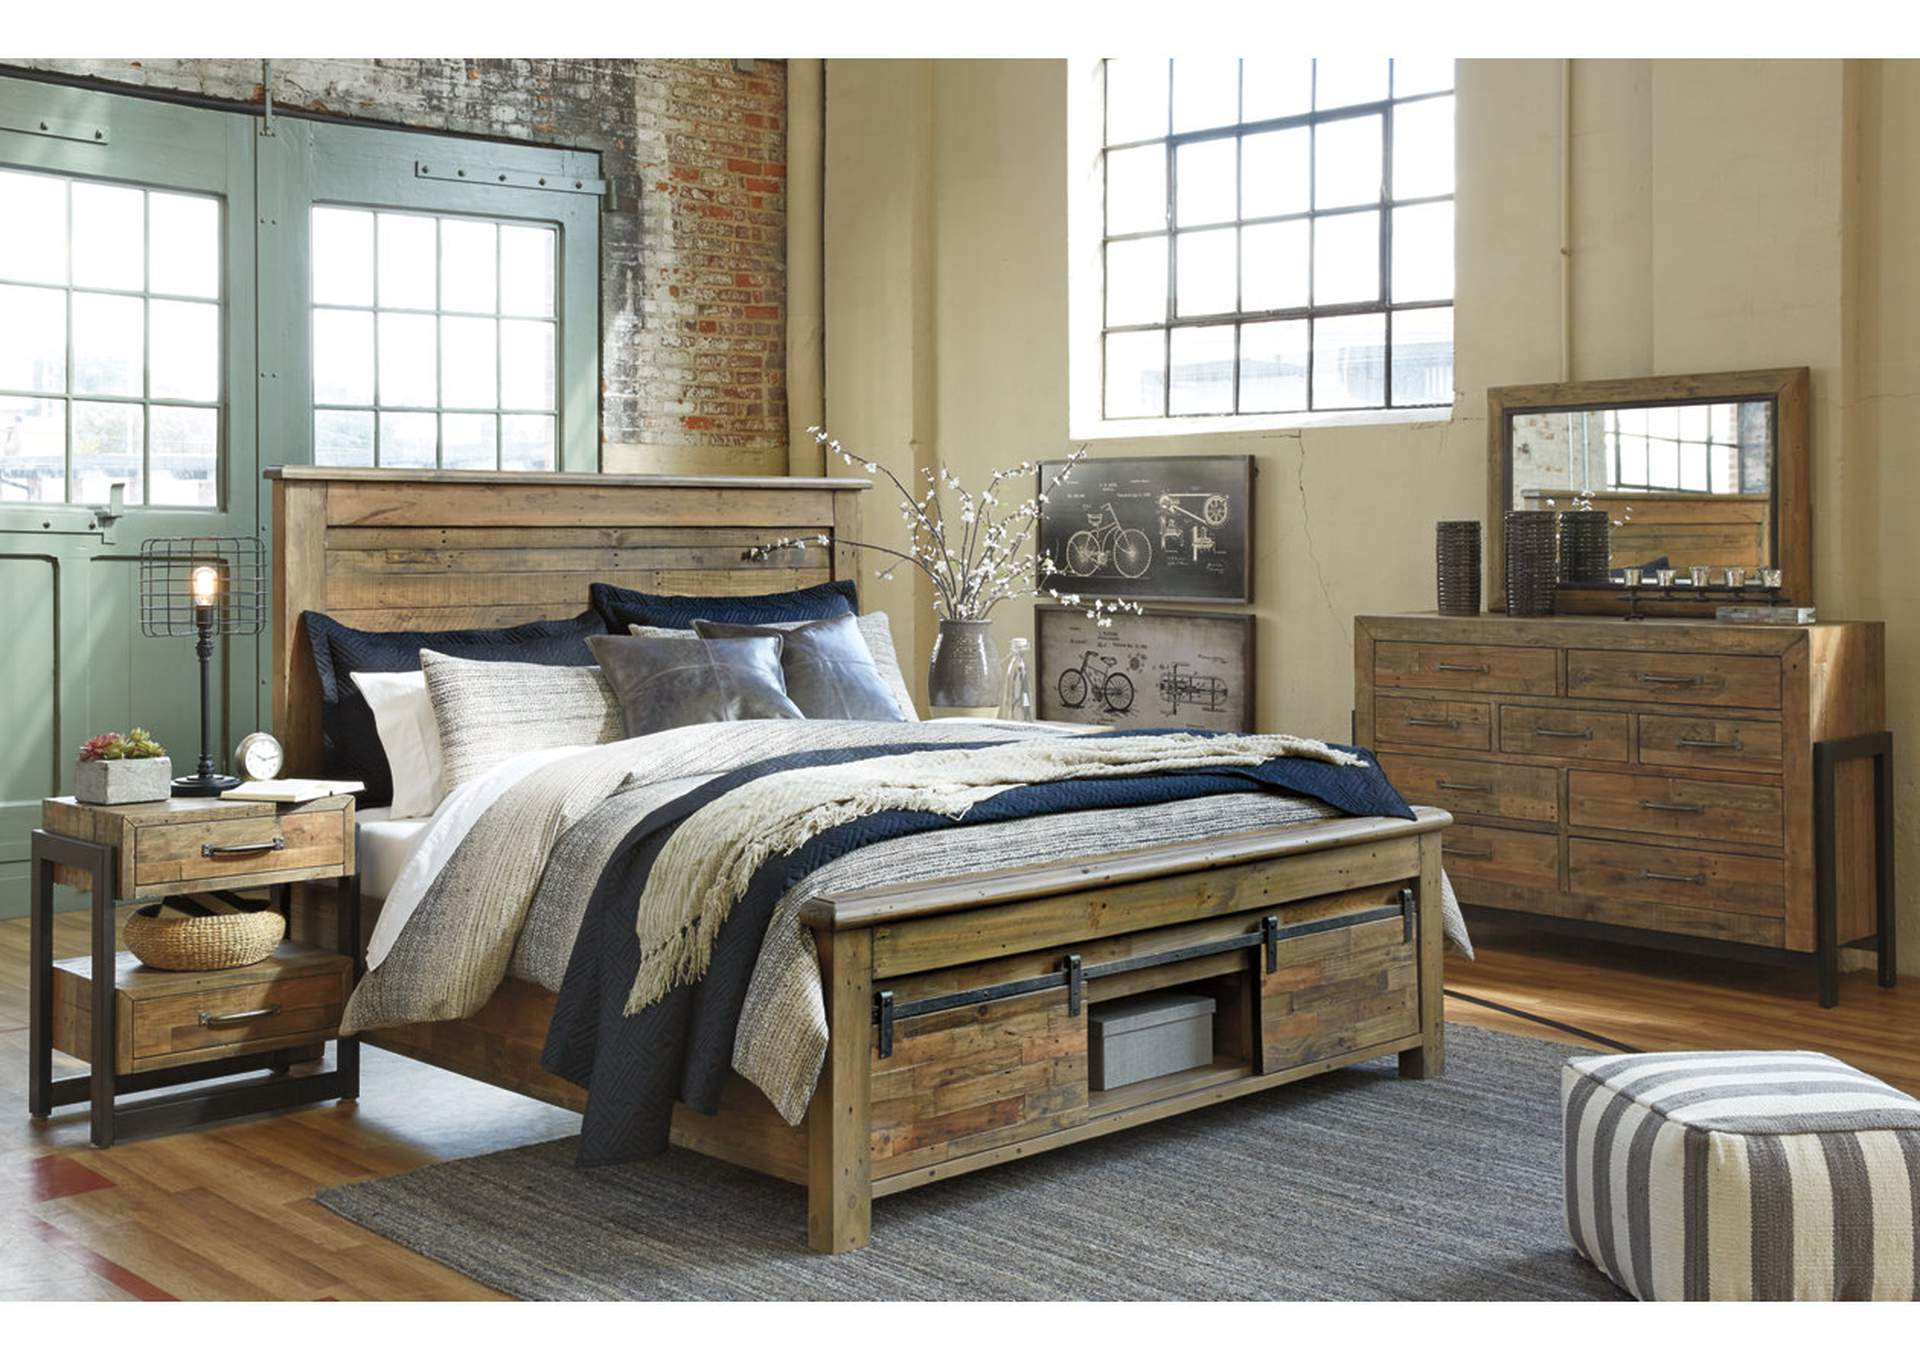 Sommerford Brown King Storage Bed w/Dresser, Mirror, Drawer Chest & Nightstand,Signature Design By Ashley